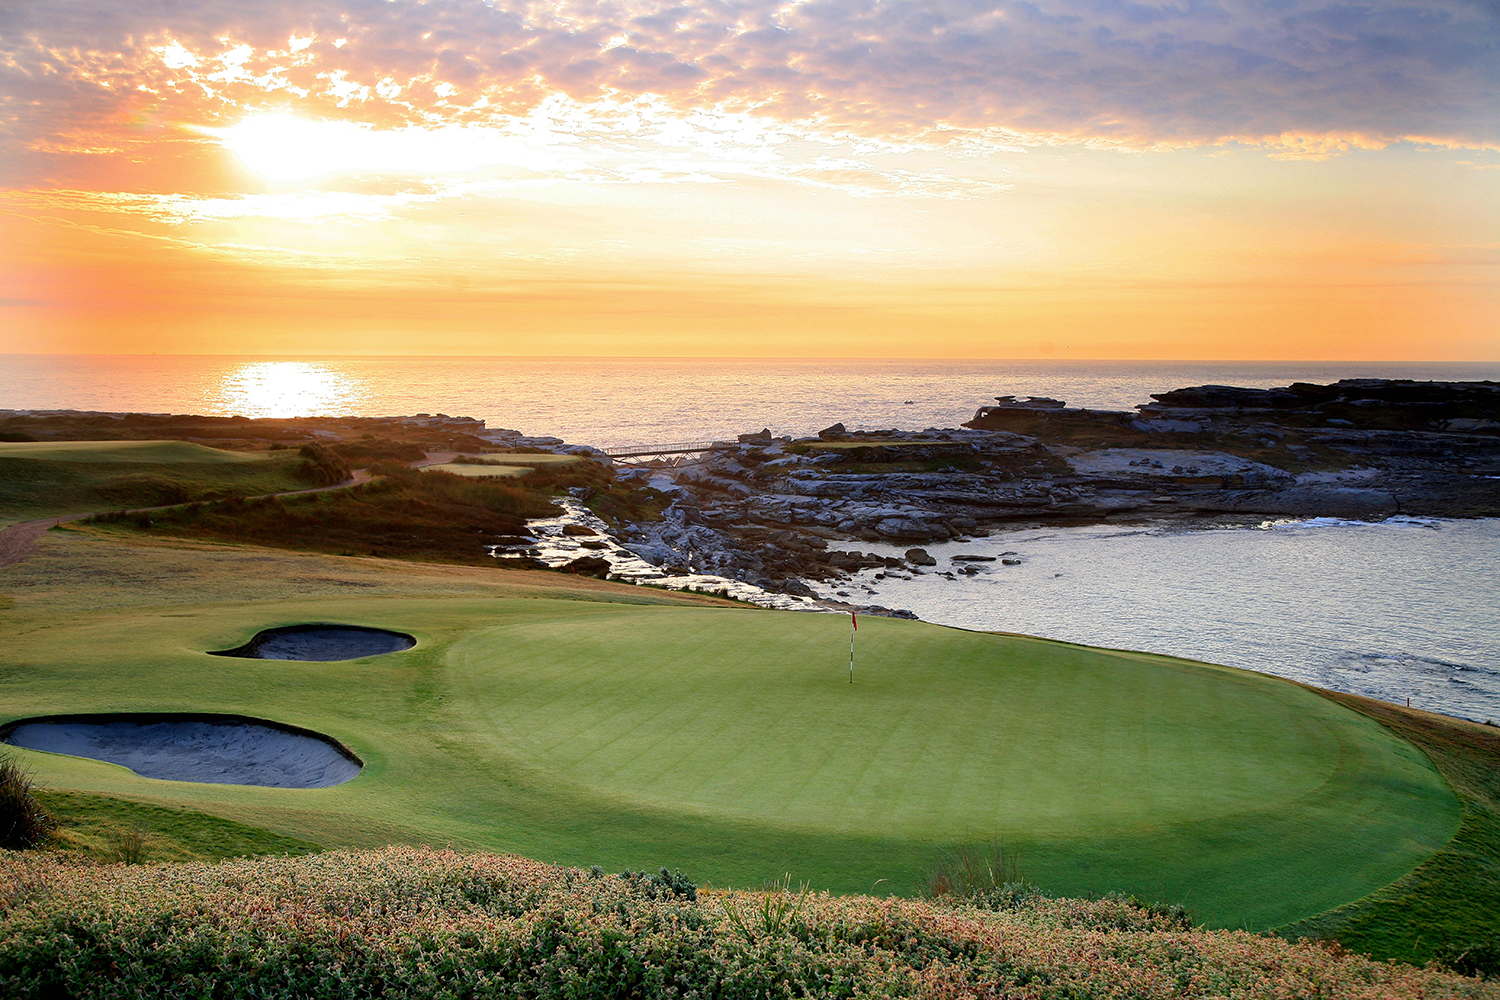 Everyone's favourite course in Sydney, ranked fourth in the Australian Golf Digest Top100, New South Wales Golf Club is perched above the crashing surf of the Pacific Ocean at La Perouse.